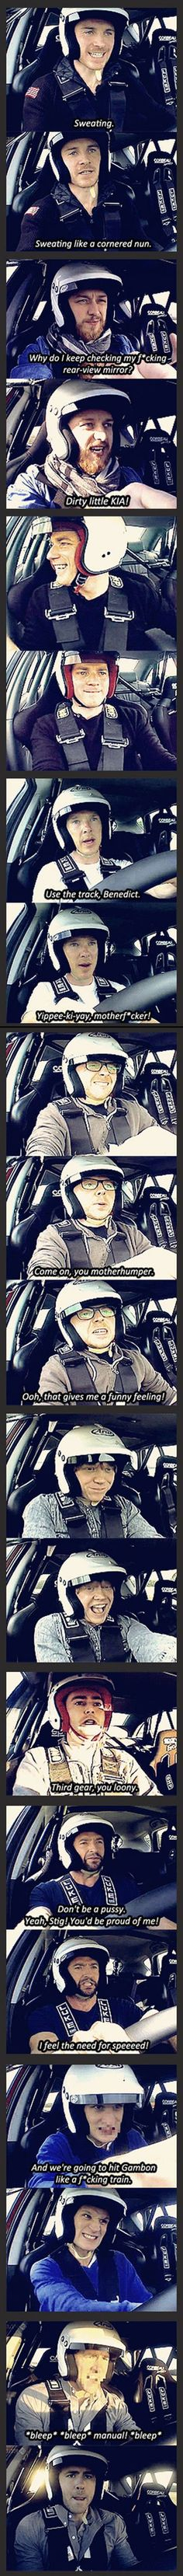 Top Gear brings out the best in celebrities :) please excuse the language but this is funny